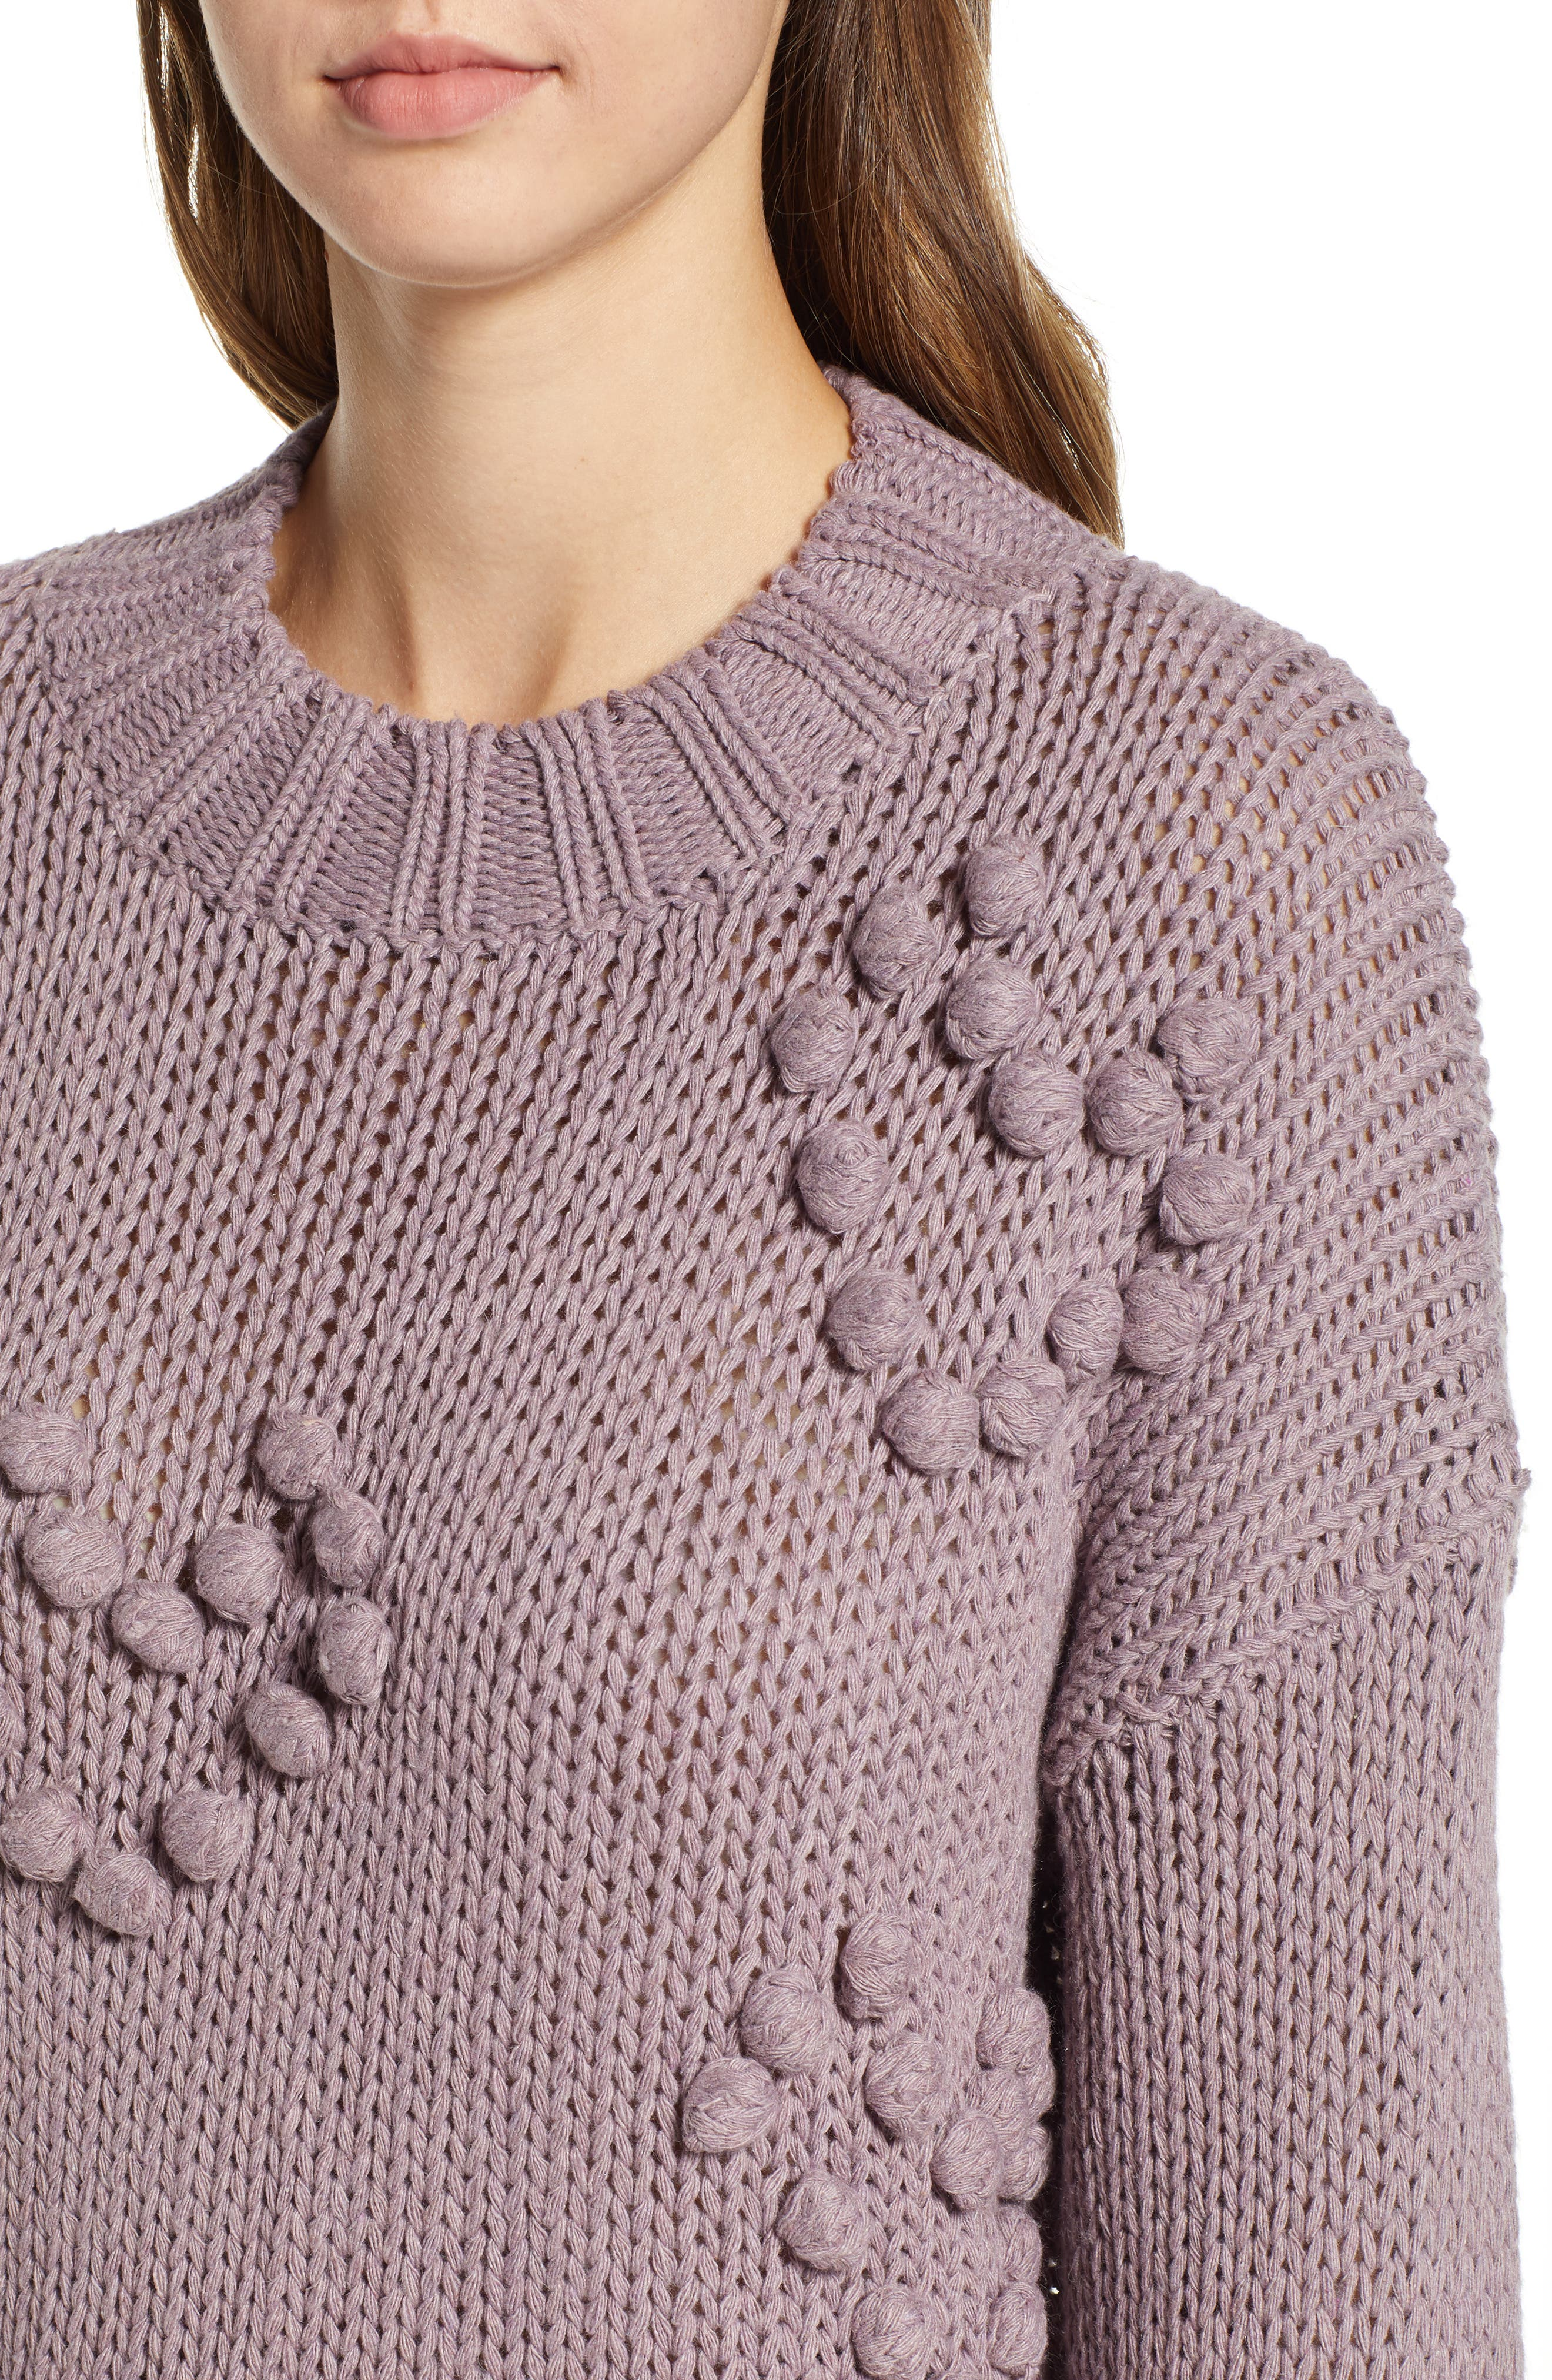 Placement Knot Knit Sweater,                             Alternate thumbnail 4, color,                             300